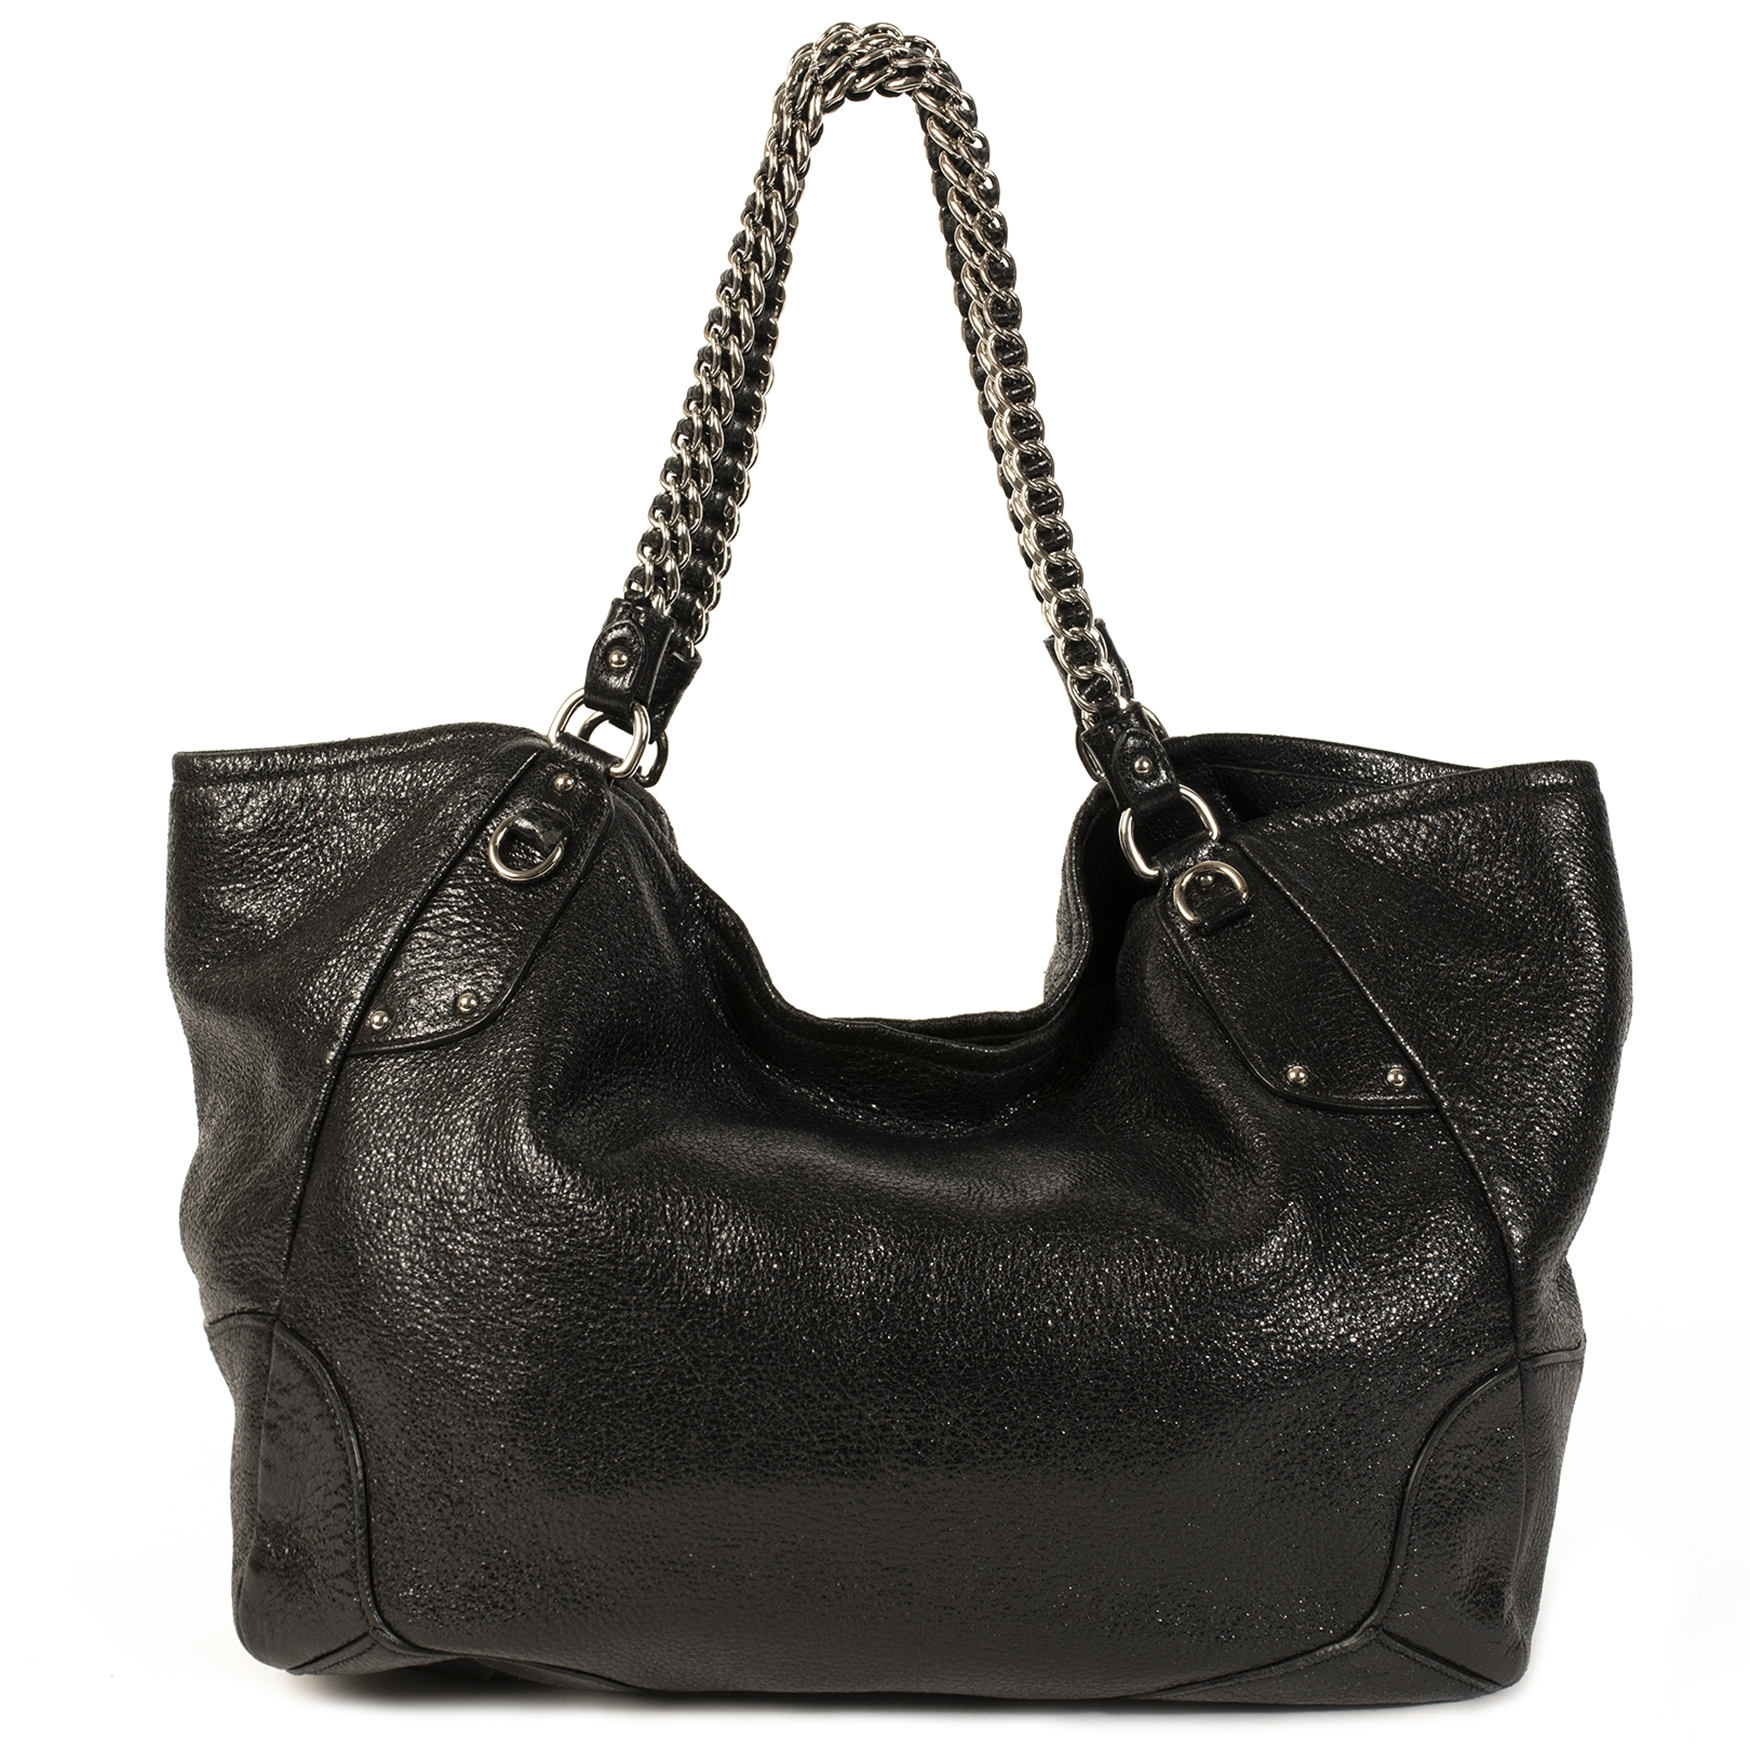 Prada Black Chain Shopper Bag